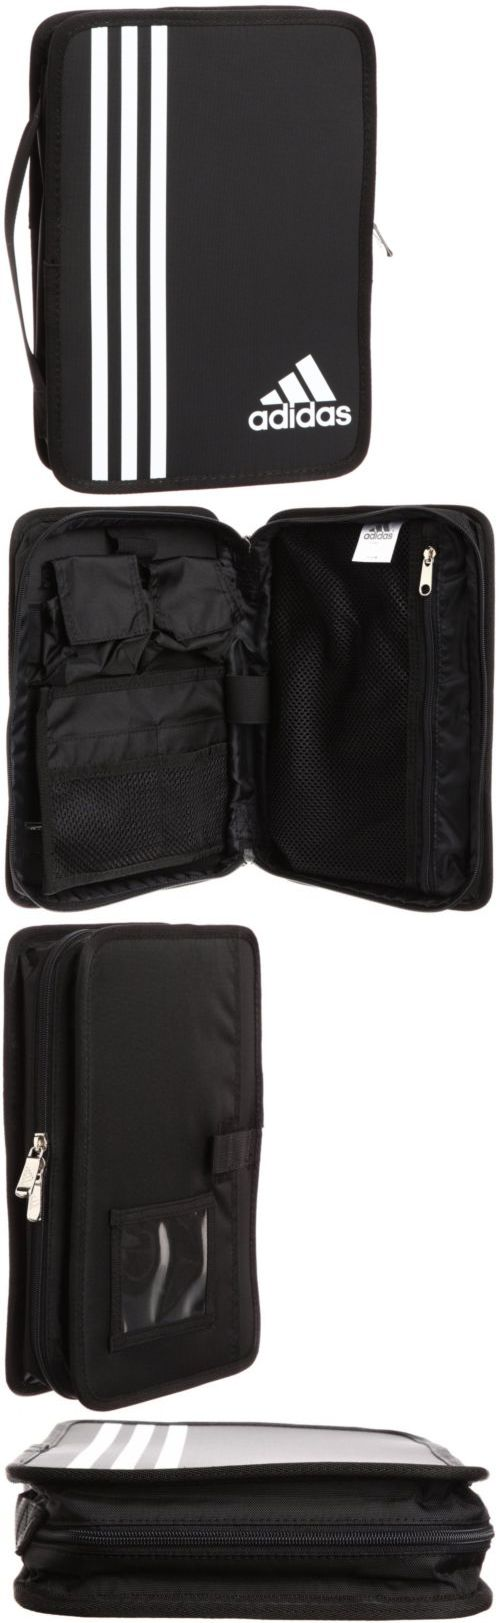 Other Soccer 2914: Adidas Japan Football Referee Bag Case Black Kq833 -> BUY IT NOW ONLY: $44 on eBay!